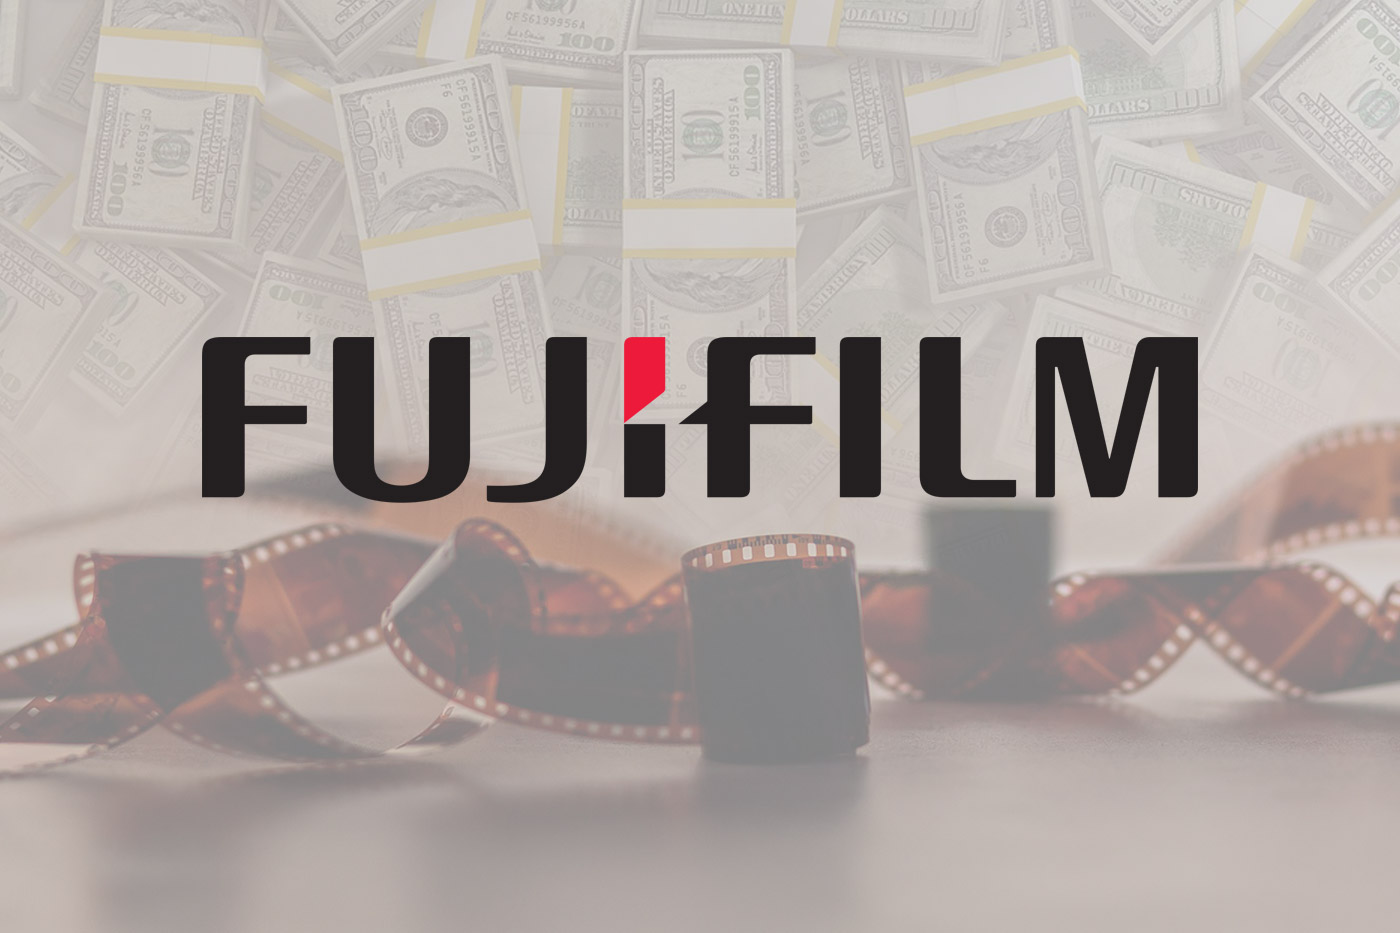 Fujifilm is Raising Film Prices by 30%+ Starting April 2019